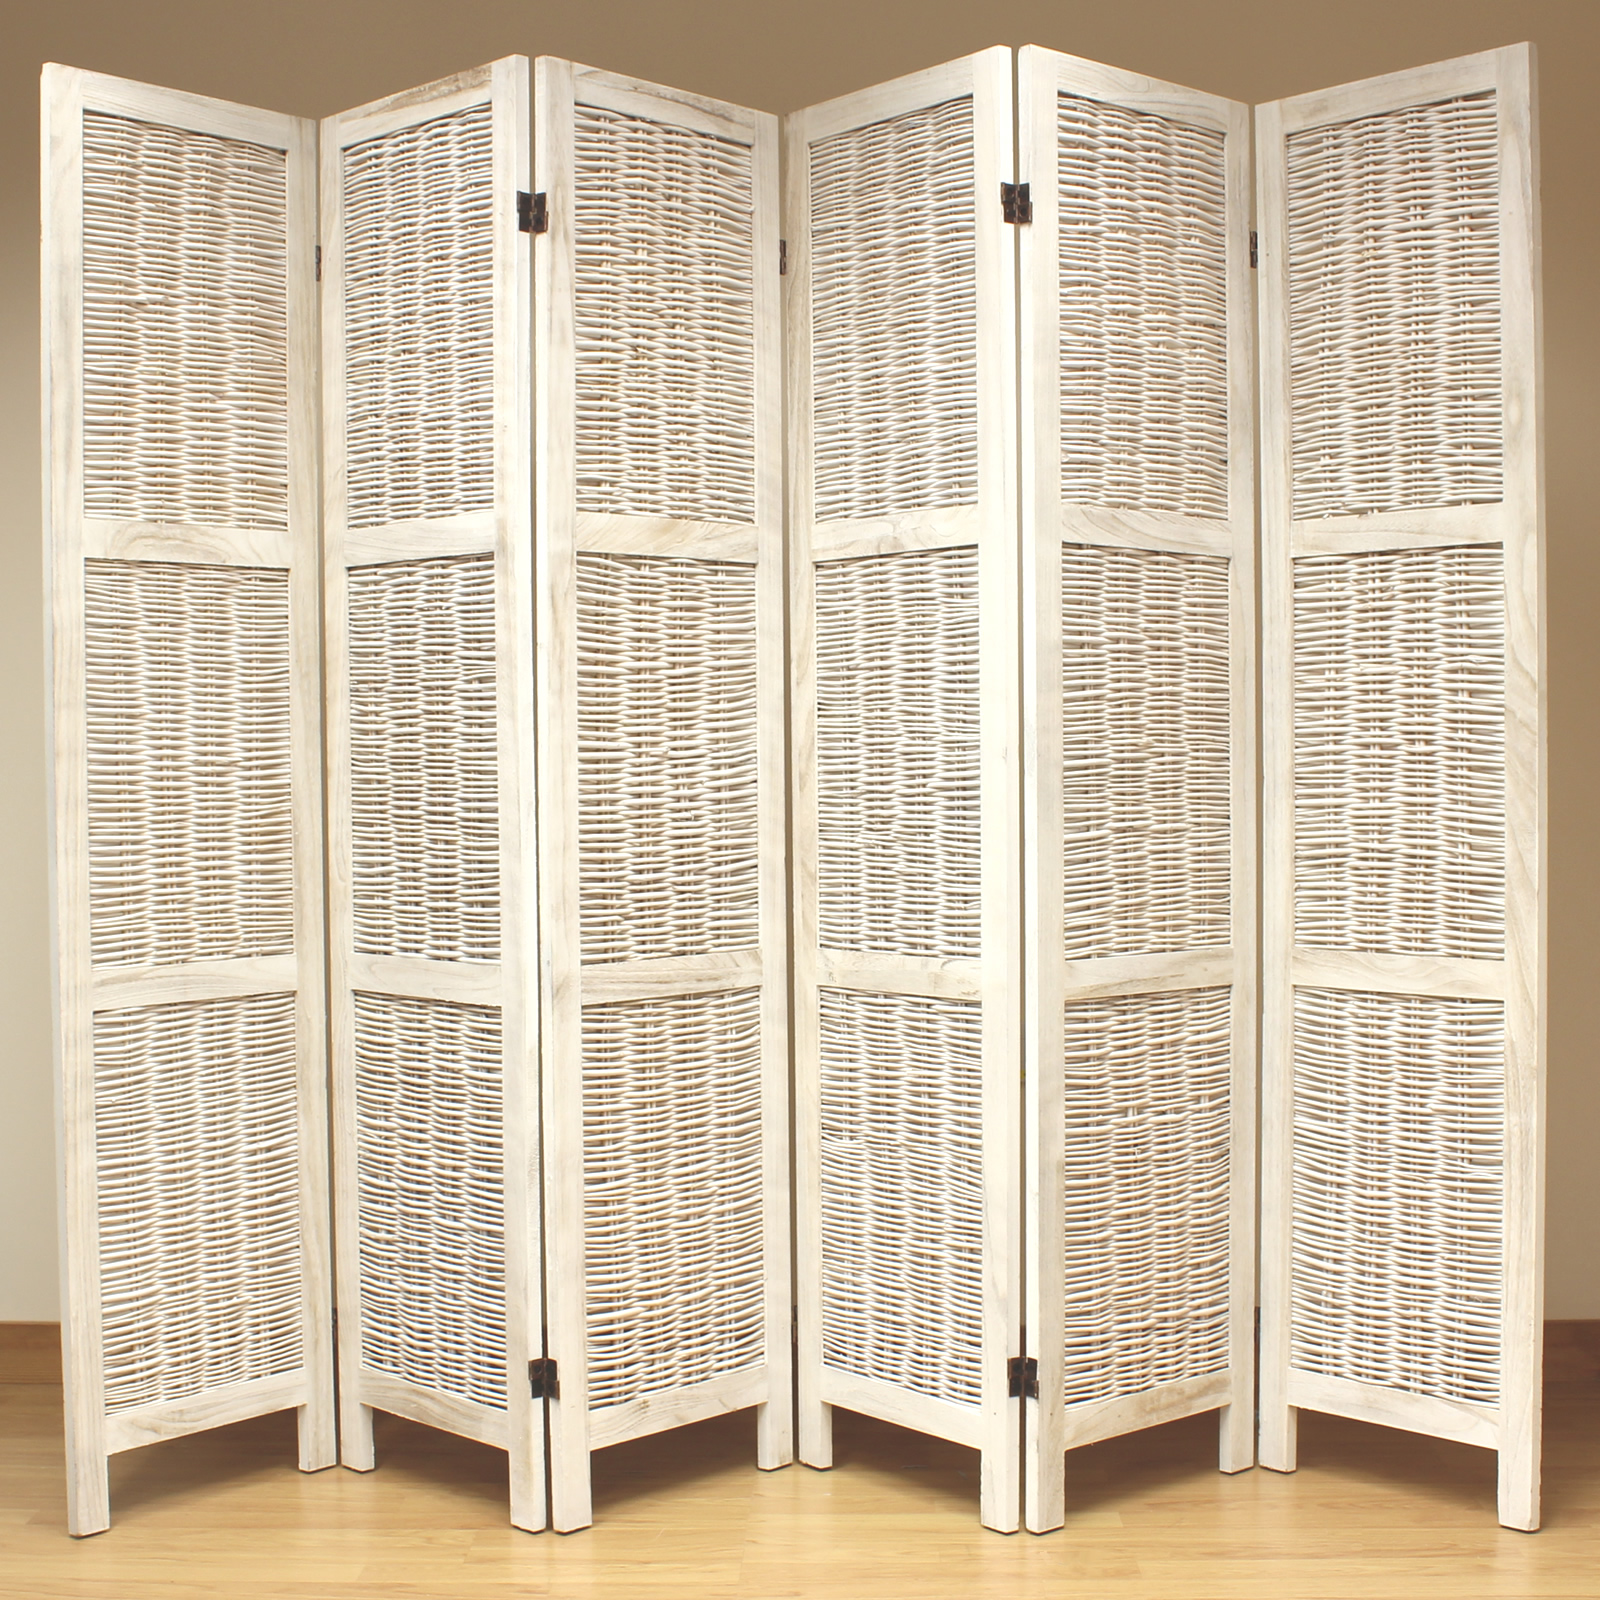 Cream 6 panel wood frame wicker room divider privacy - Plastic room divider screen ...